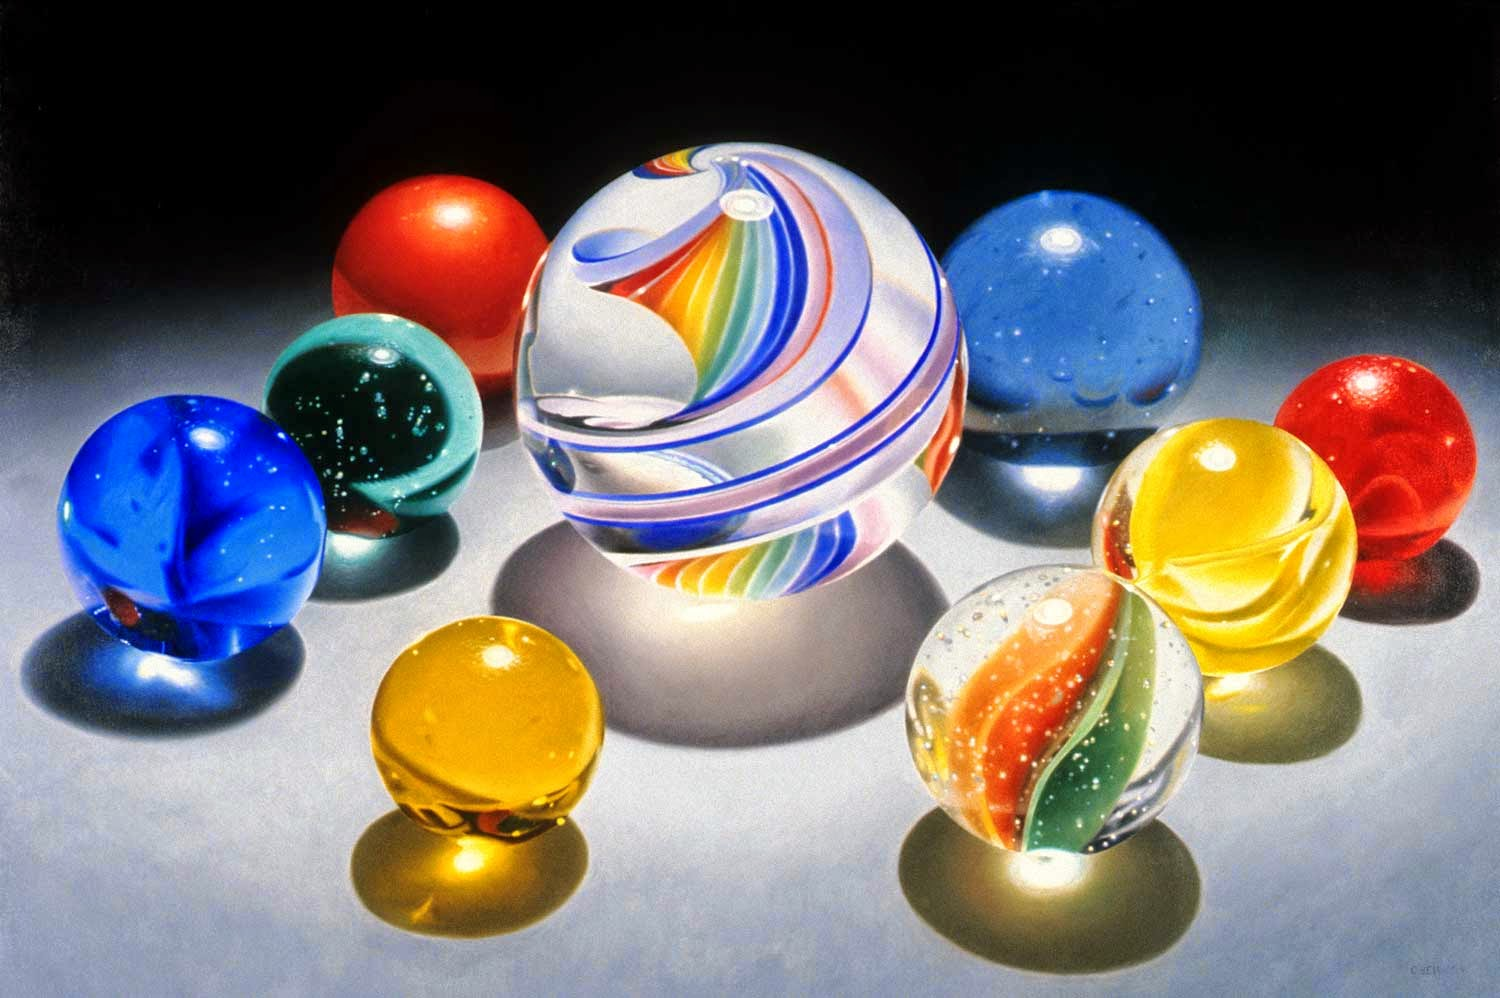 12-Kandy Kane Rainbow-Charles-Bell-Hyper-Realistic-Paintings-www-designstack-co